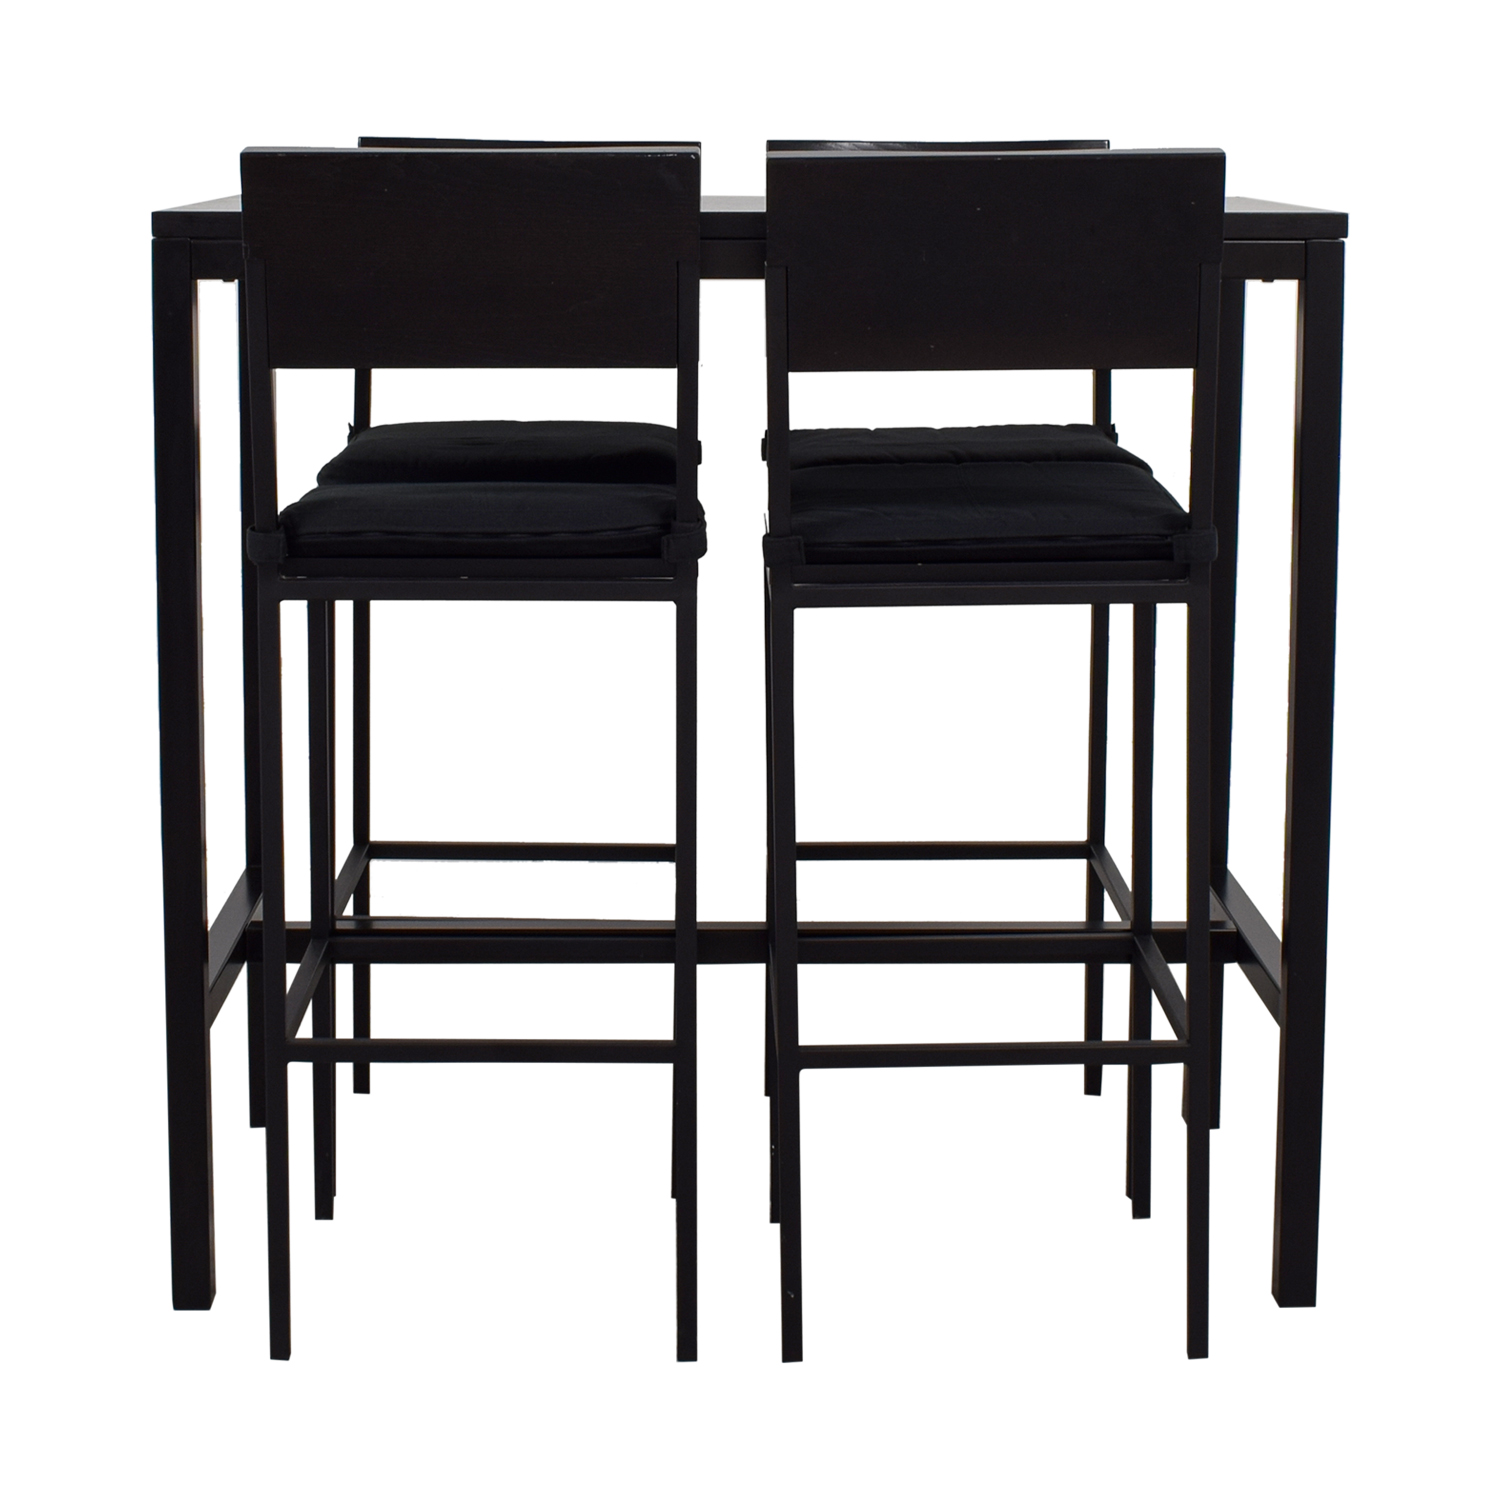 Crate & Barrel Black Tall Kitchen Dining Set Crate & Barrel